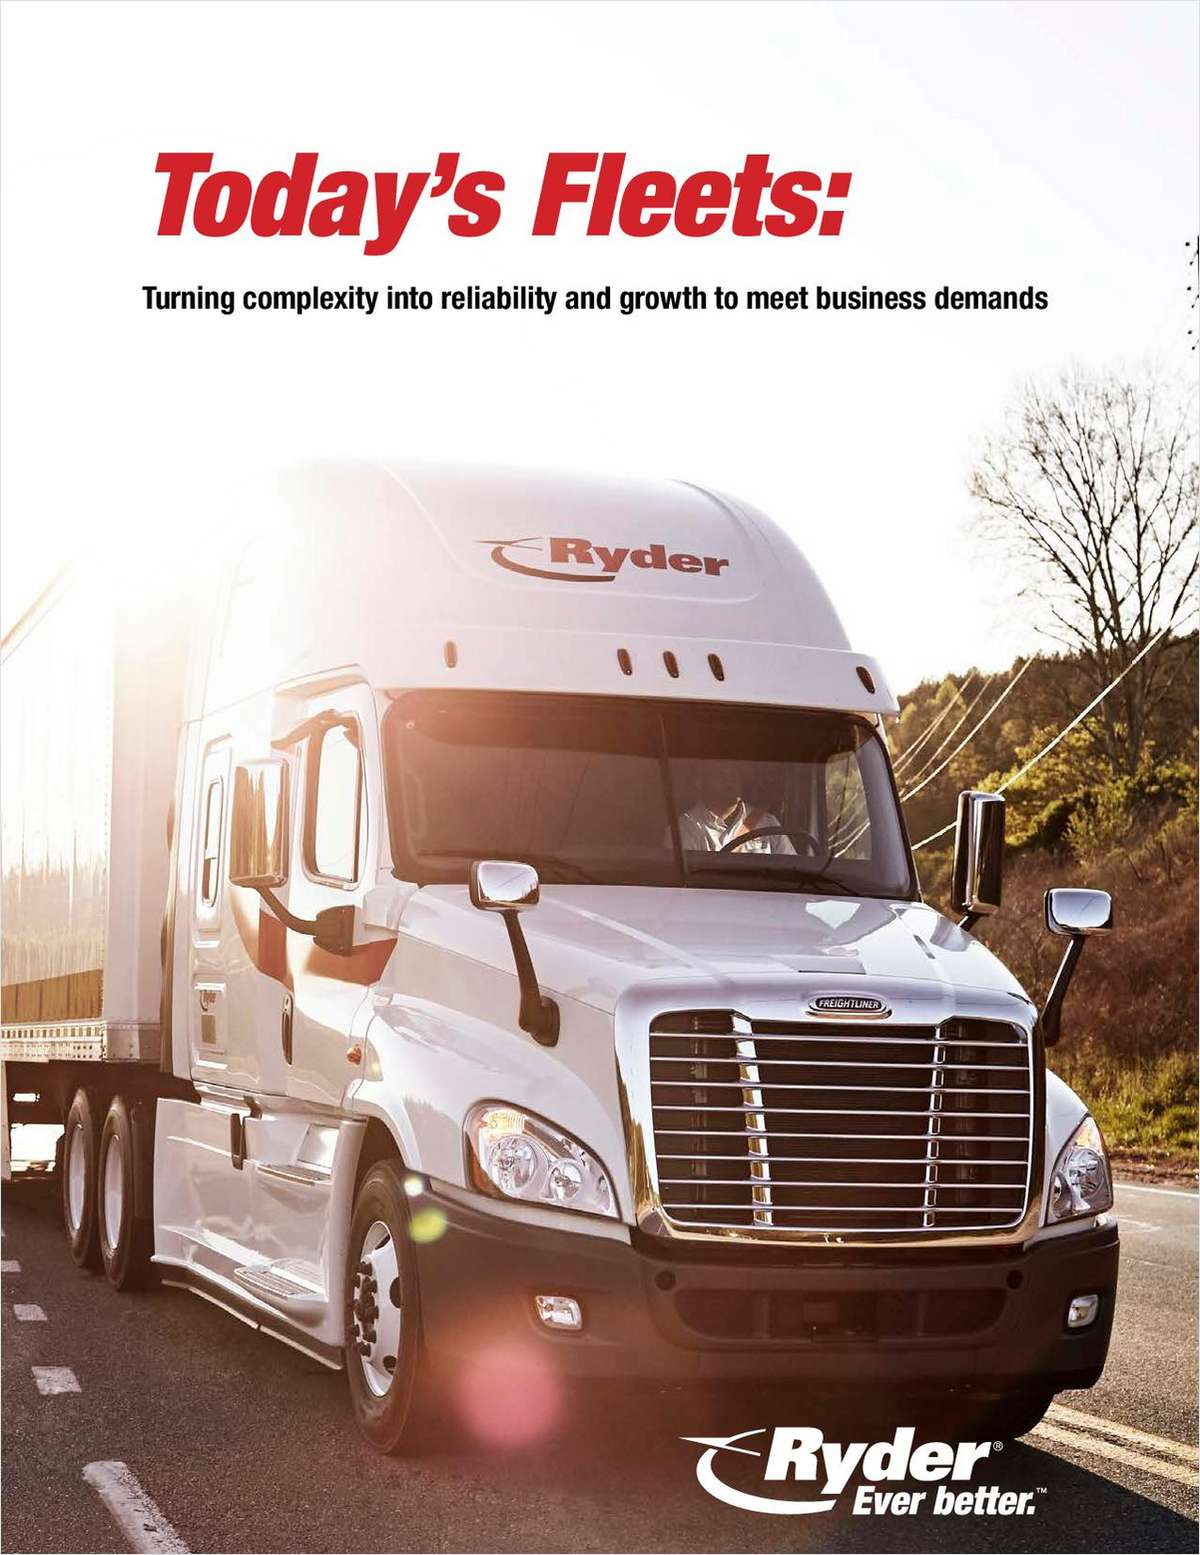 Today's Fleets: Turning Complexity Into Reliability and Growth to Meet Business Demands